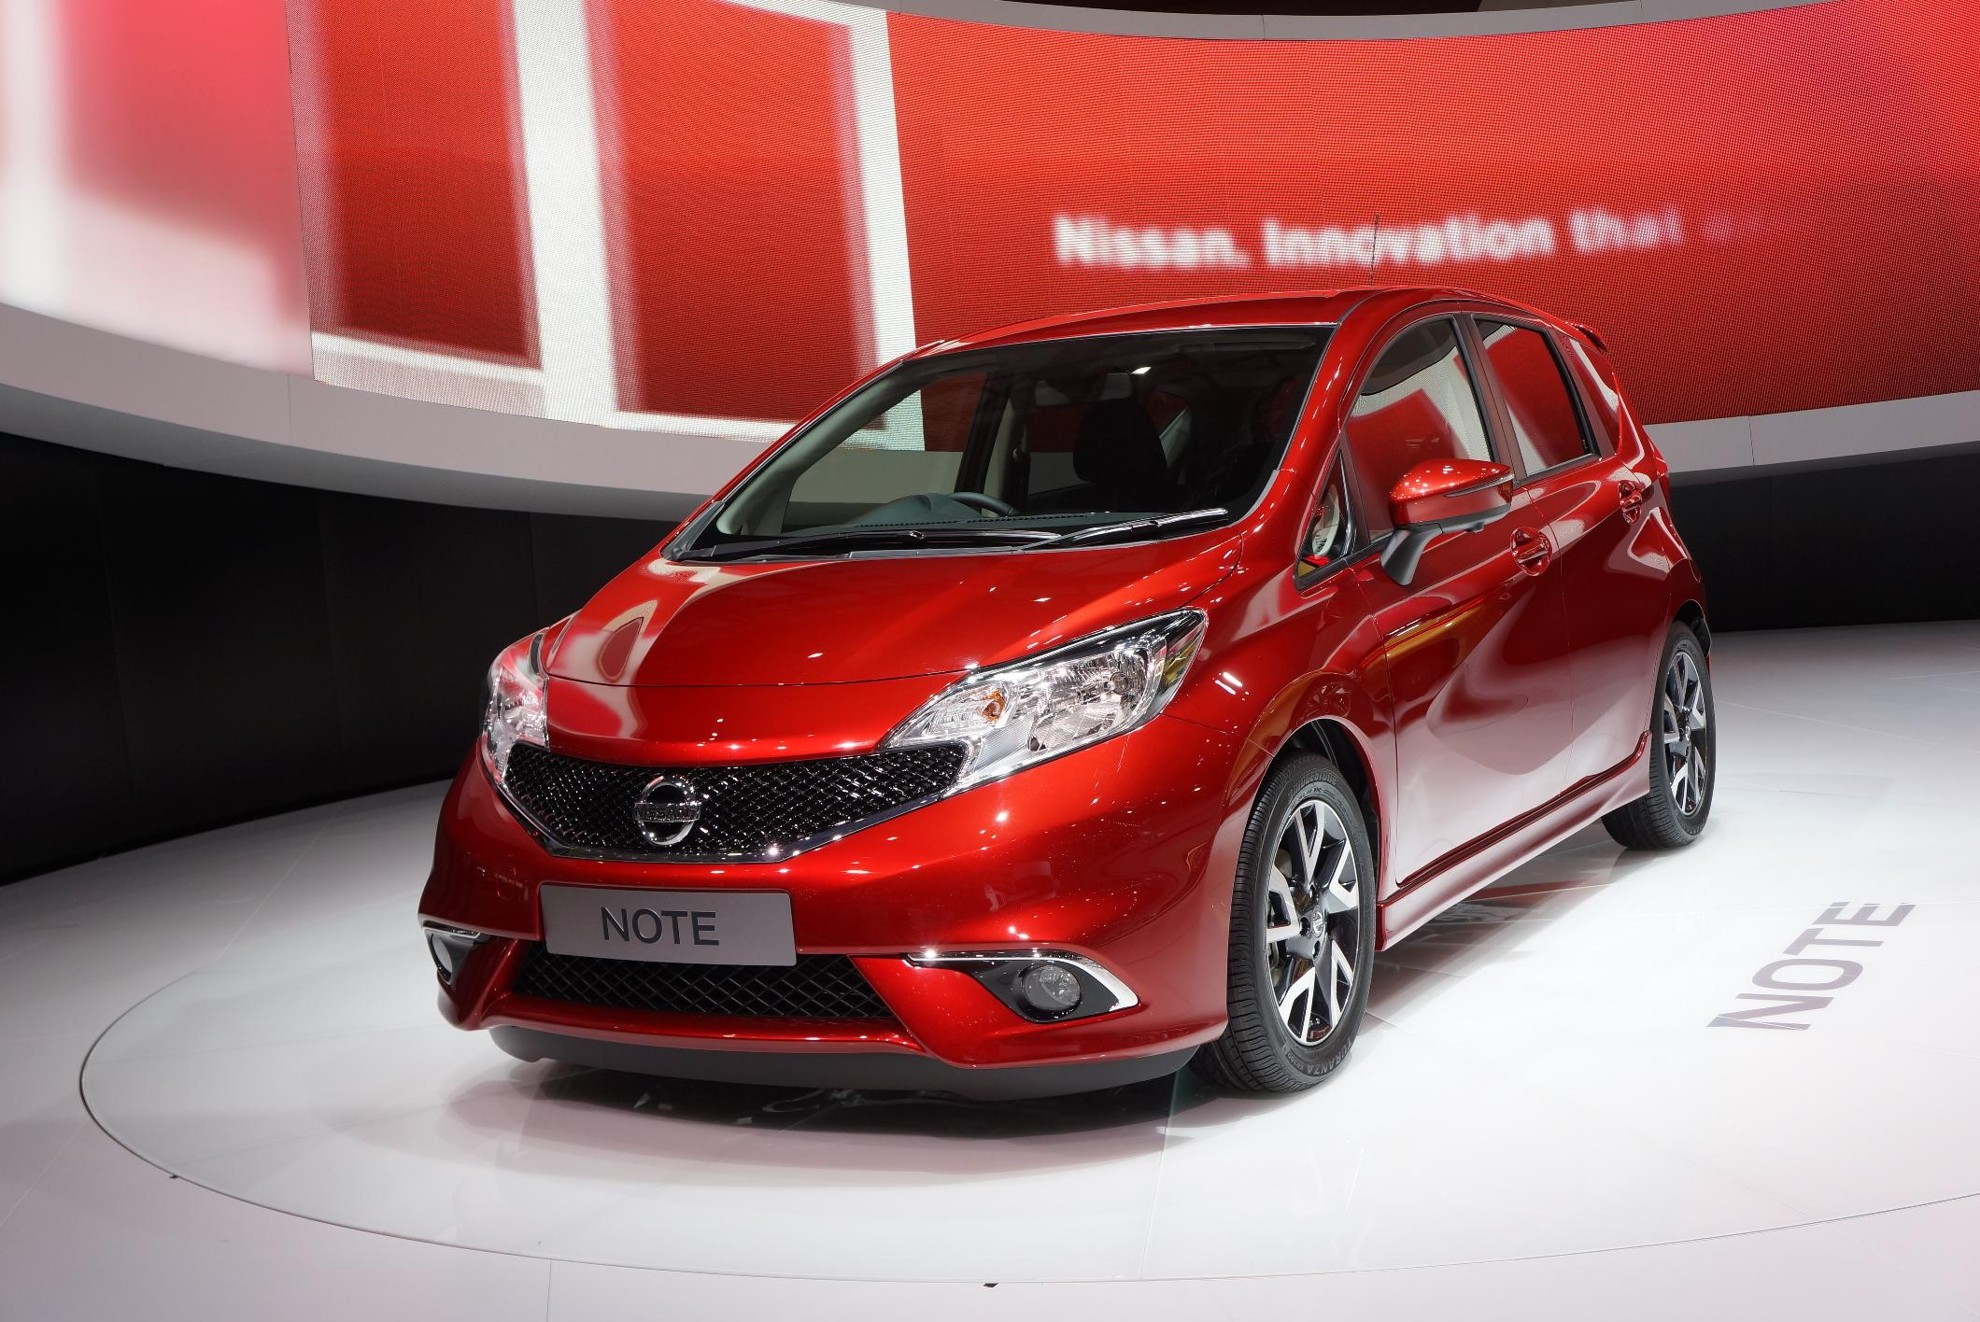 Red Nissan Note